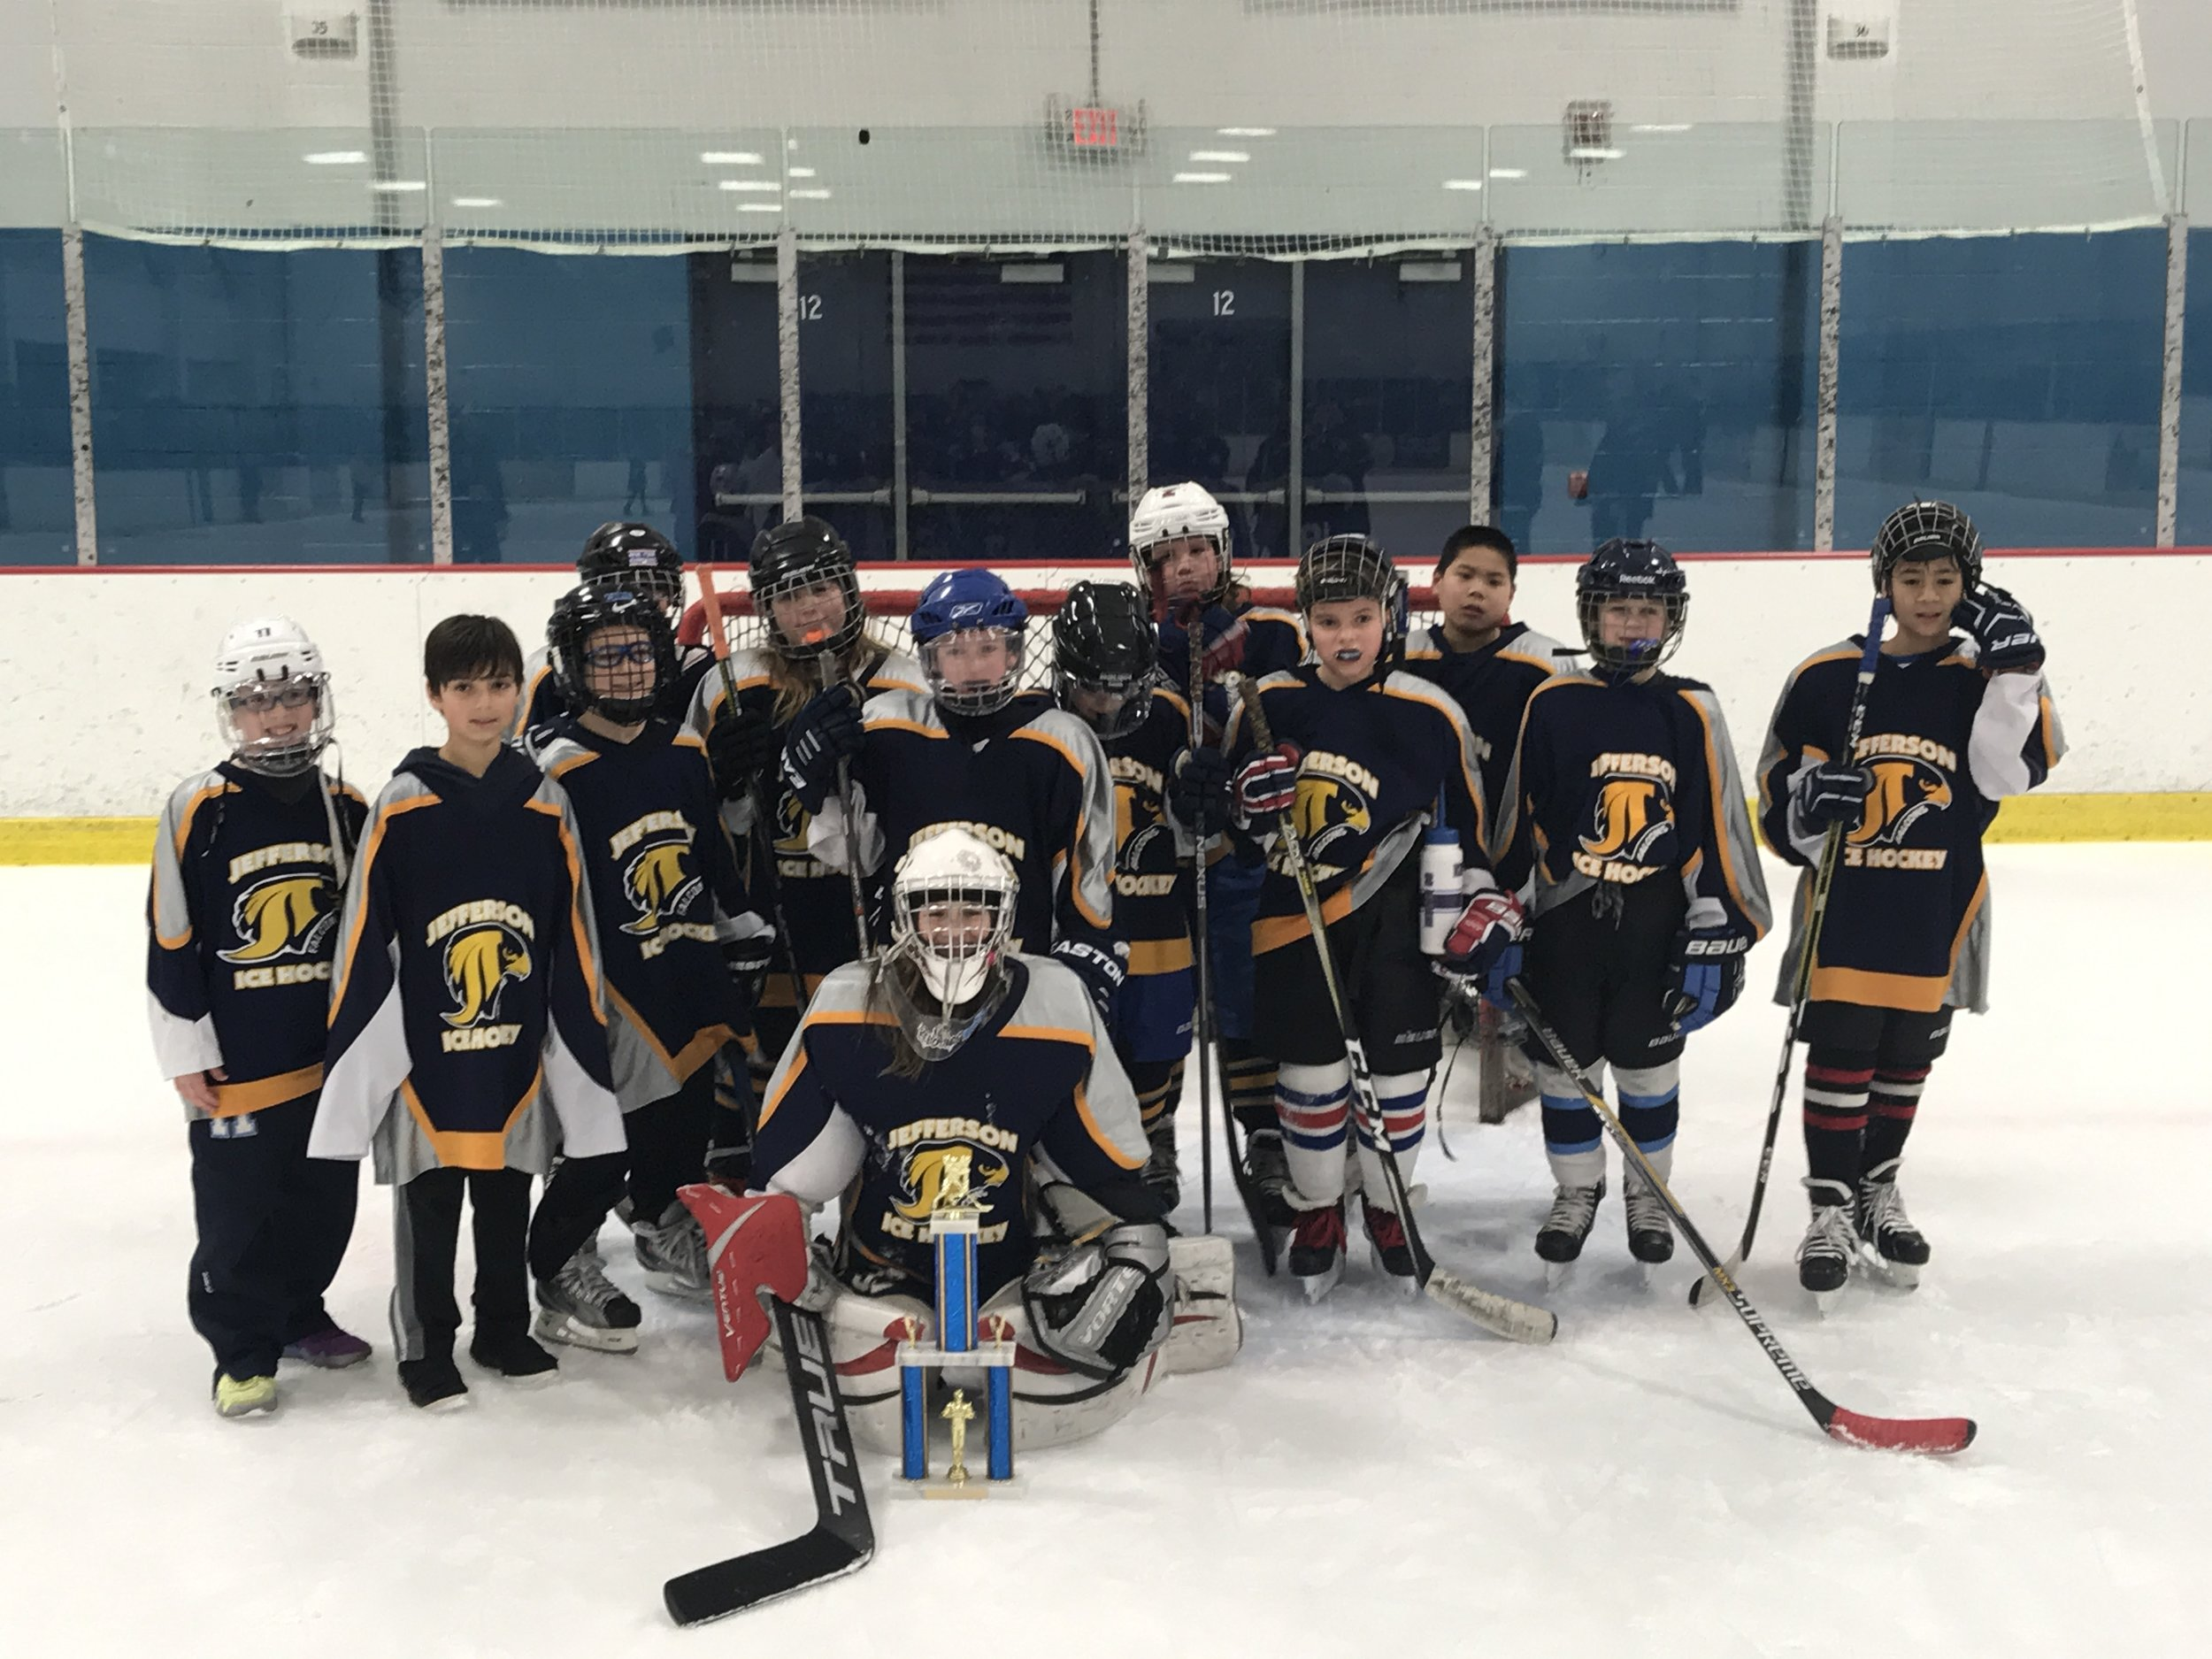 2017-2018 Peewee 2nd place